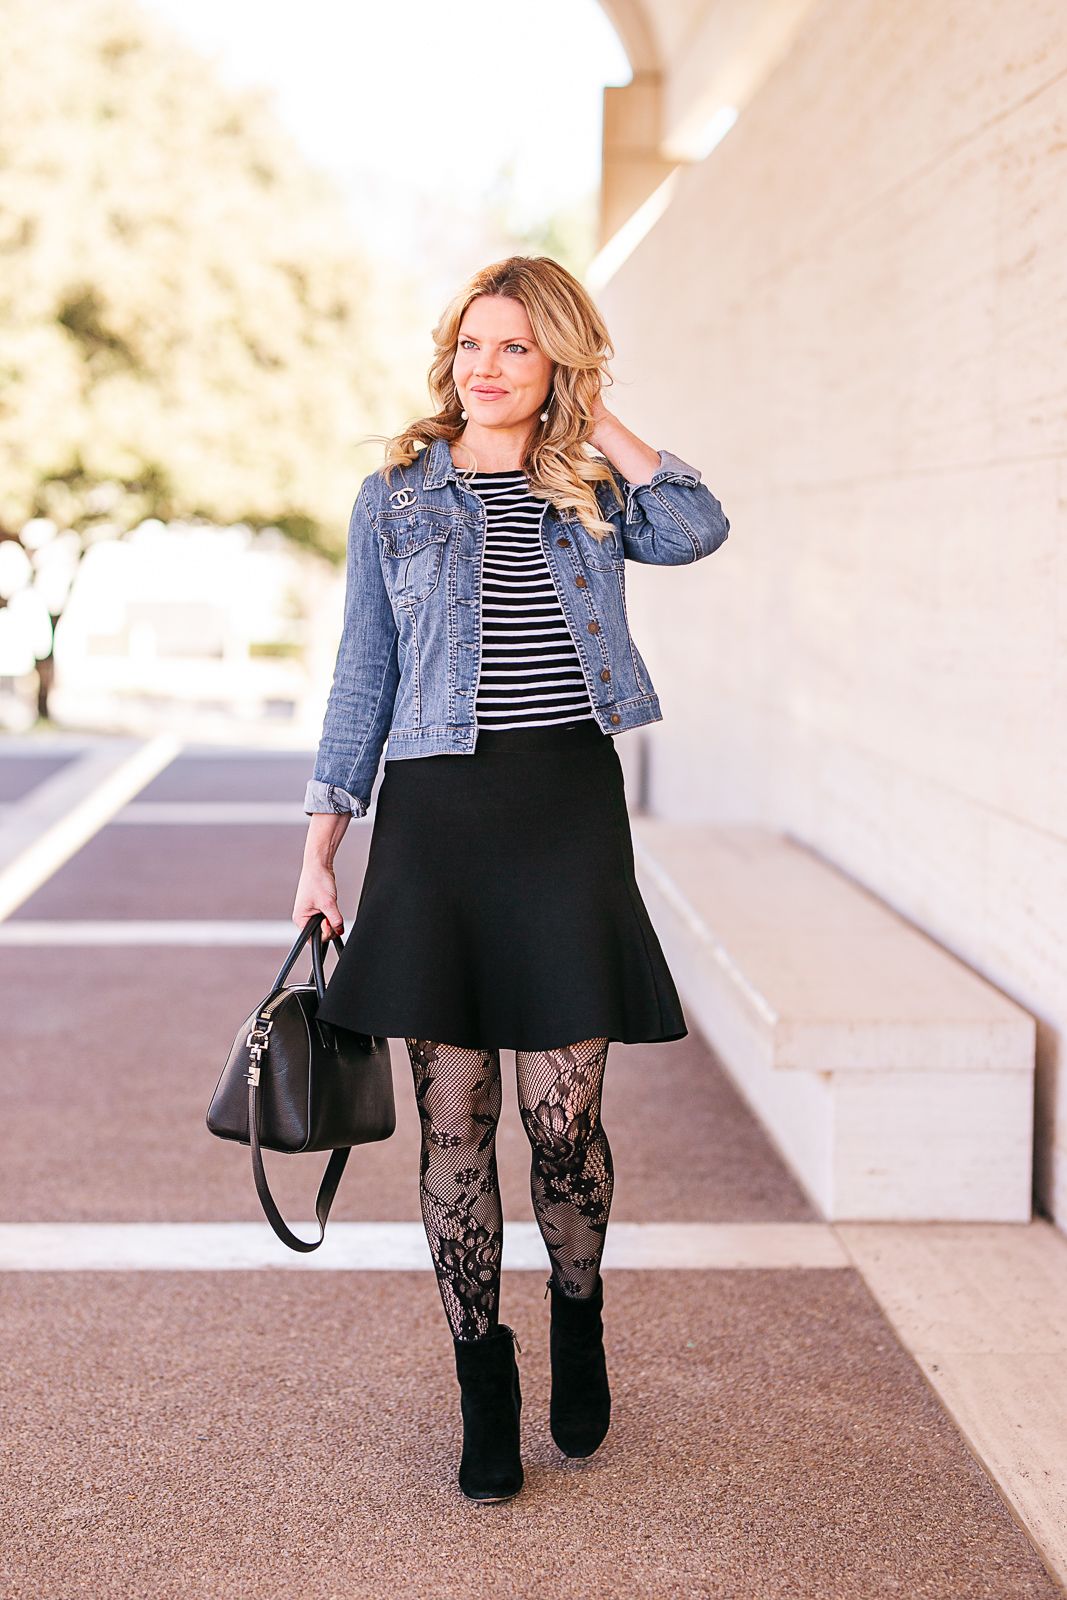 Buy How to patterned wear tights picture trends